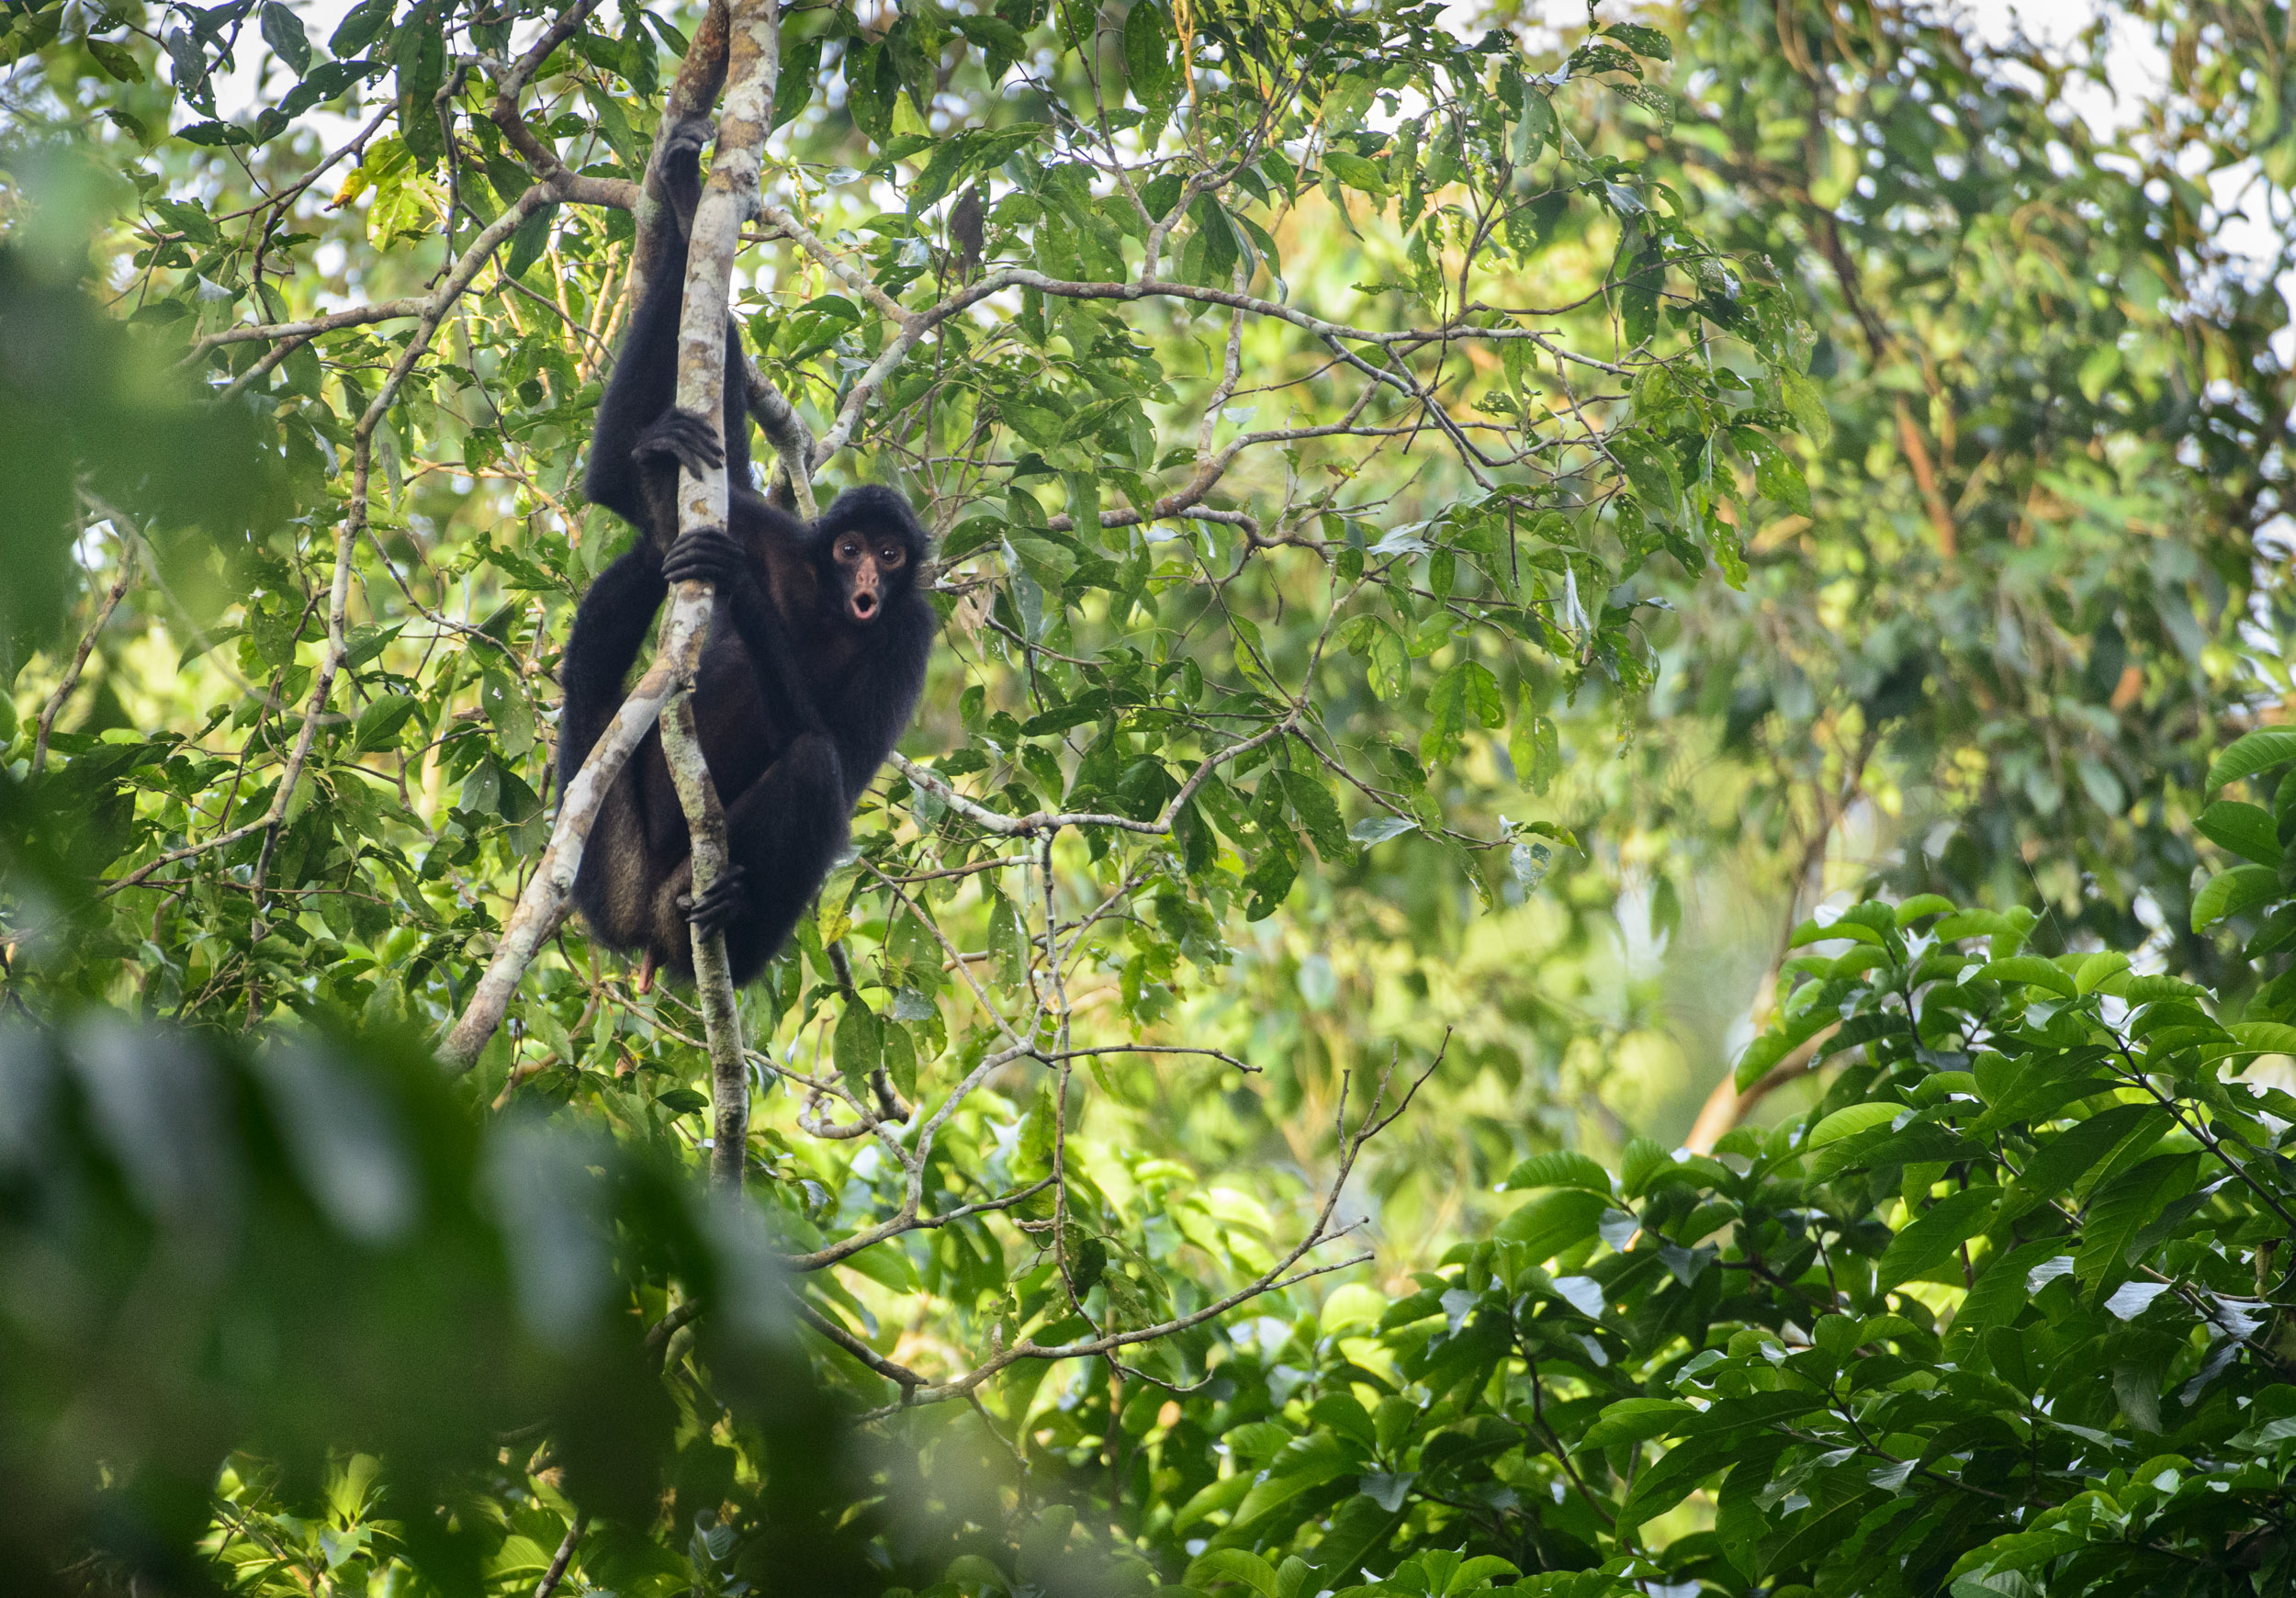 Peruvian Spider Monkey (Ateles chamek) in the Peruvian Amazon, 03/14. Cropped